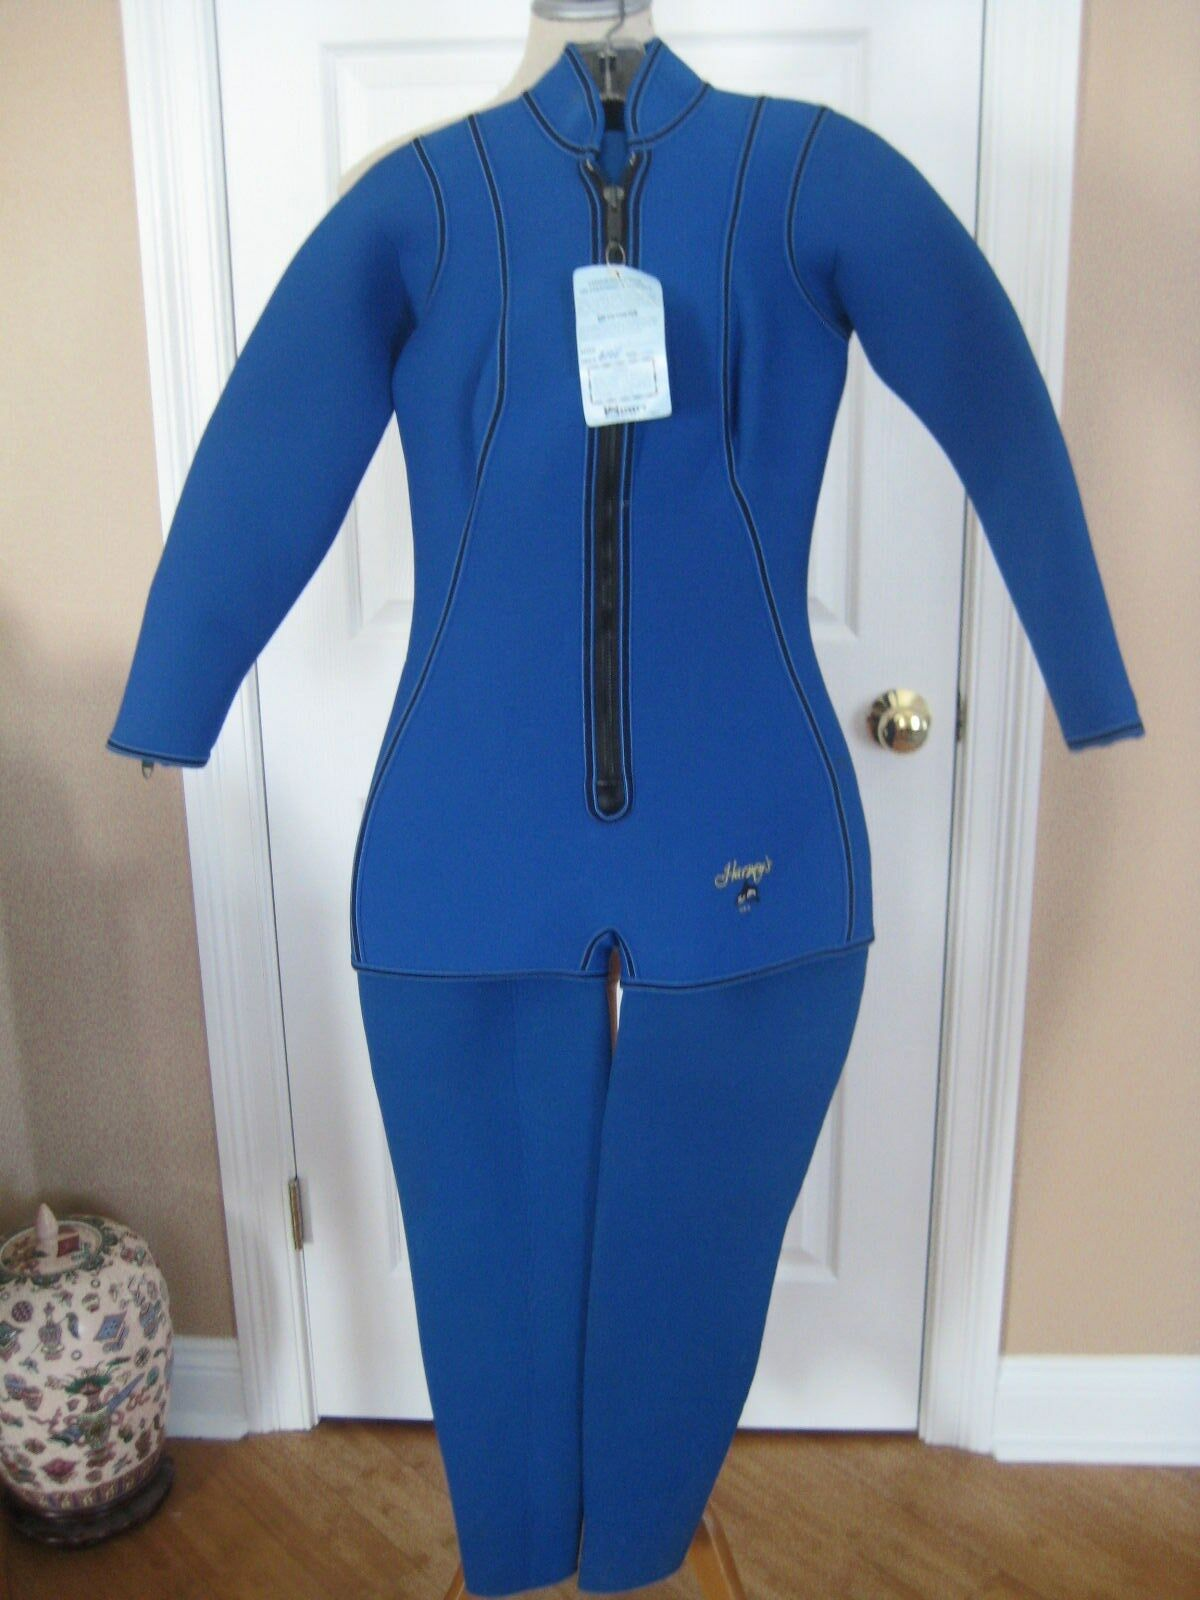 NWTS Vtg Harvey's Wetsuit Adult L Women Neoprene  2 Pc Scuba Diving Large Lg New  high quality genuine